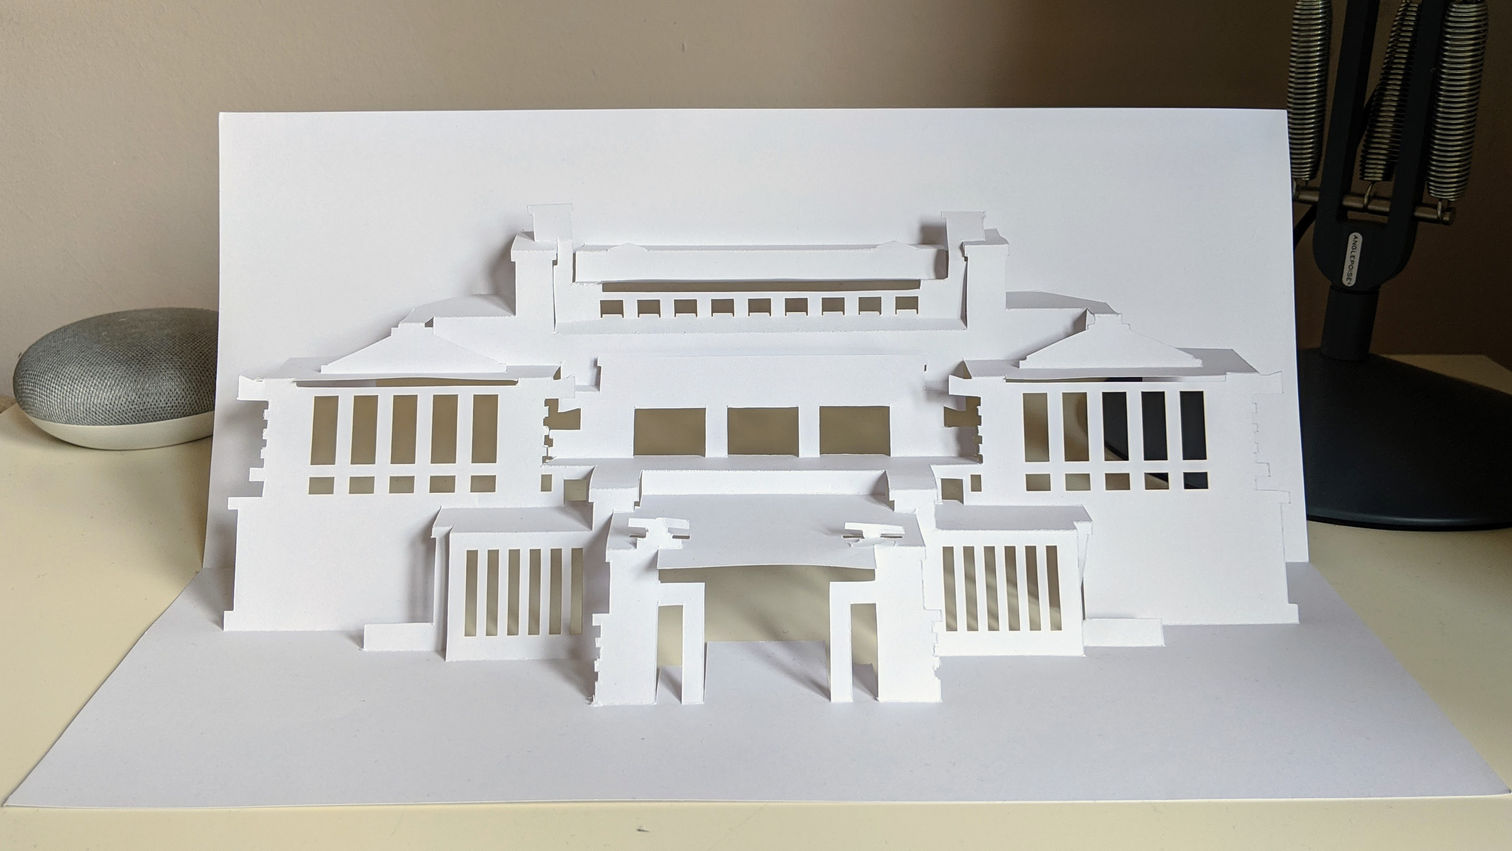 Kirigami model of Unity Temple